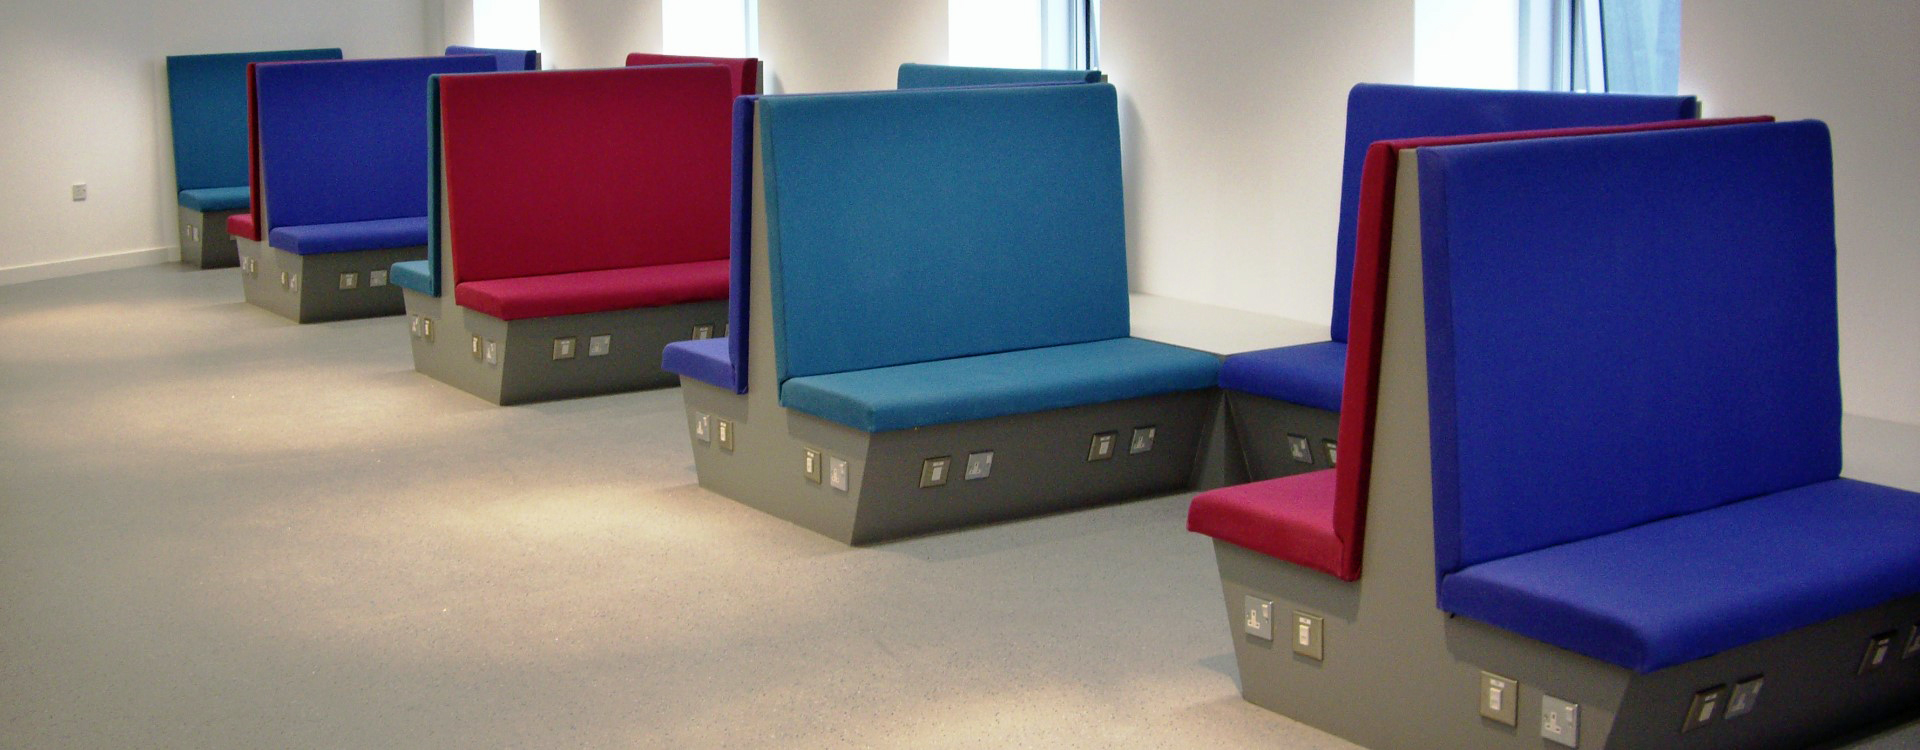 Bespoke Seating